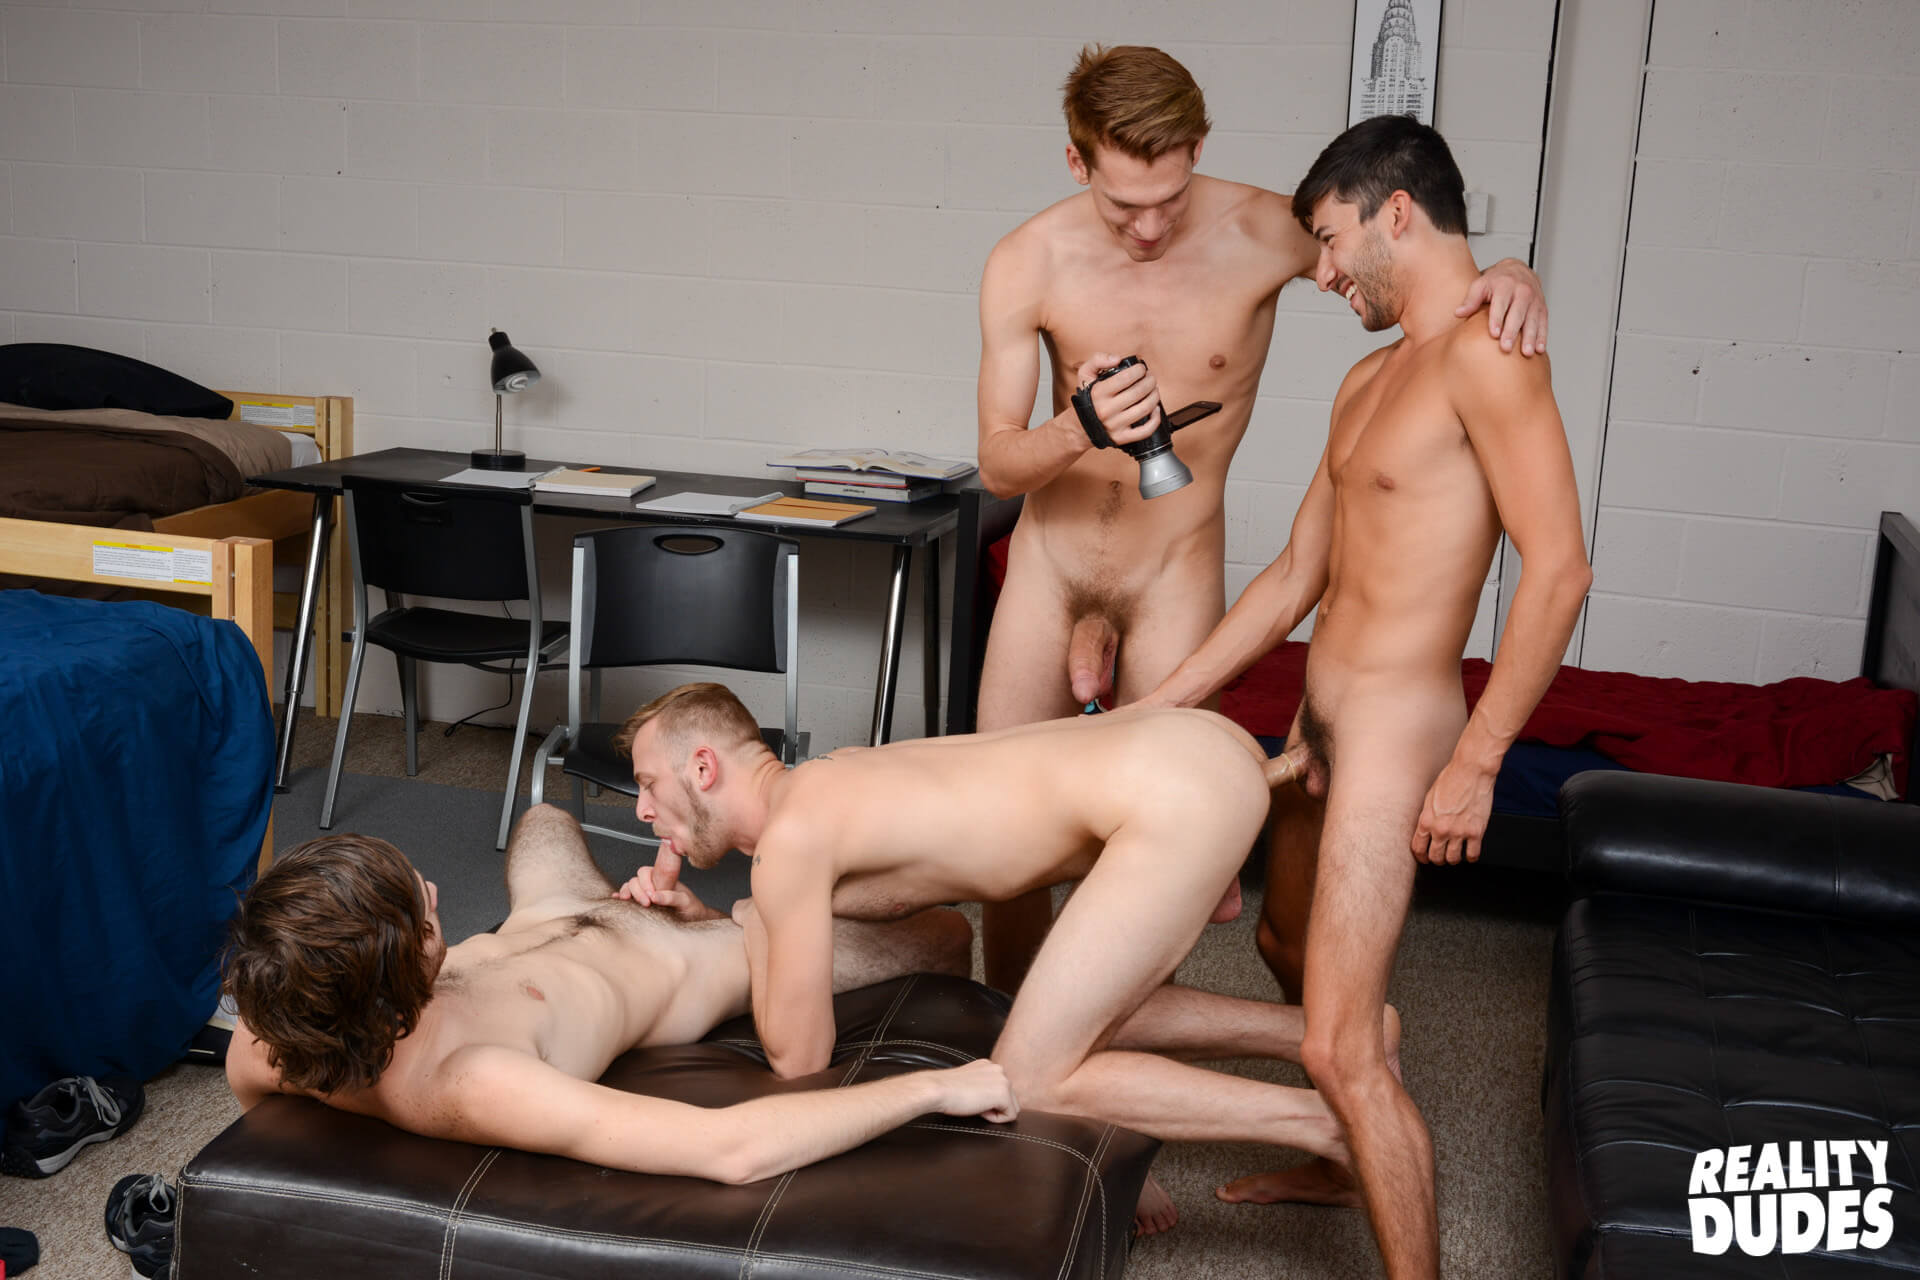 reality dudes dick dorm heavenly dick caleb rules chandler scott scott demarco zack grayson gay porn blog image 44